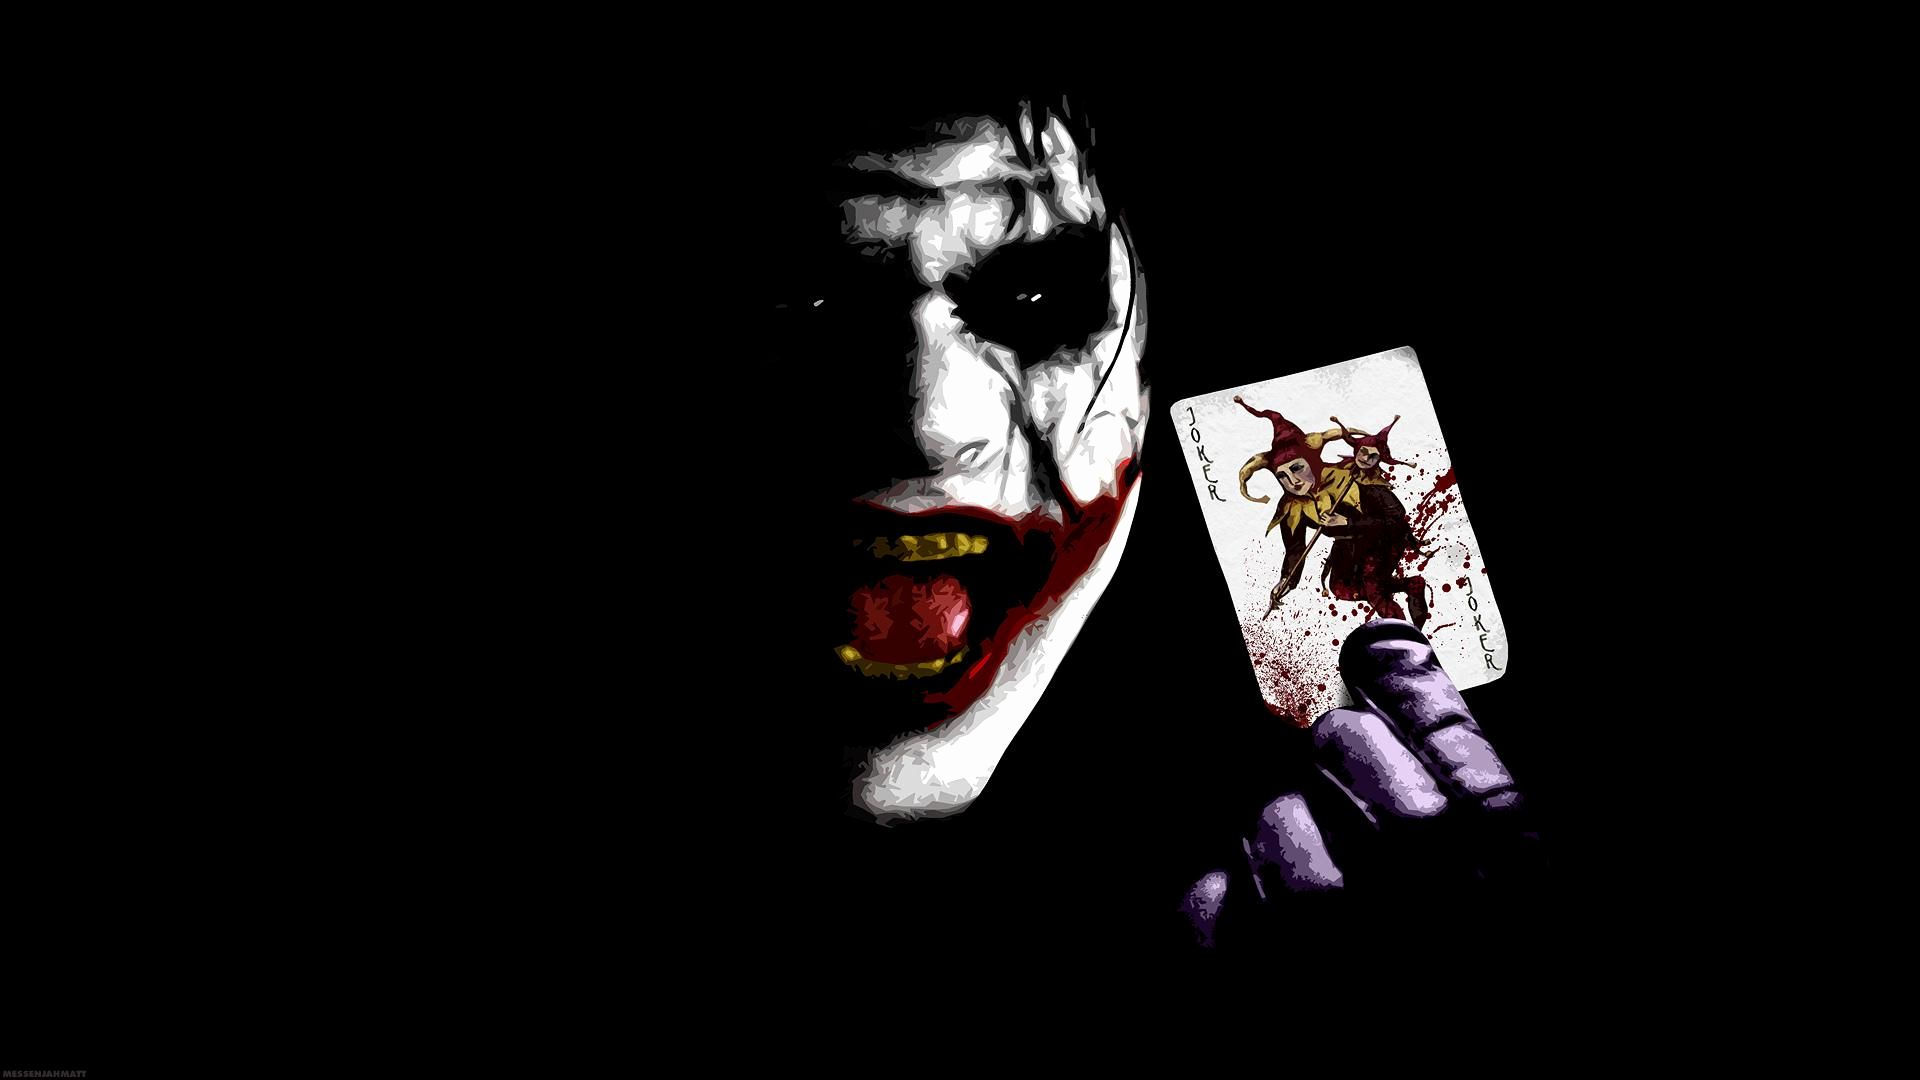 Cool Joker Wallpapers Top Free Cool Joker Backgrounds Wallpaperaccess